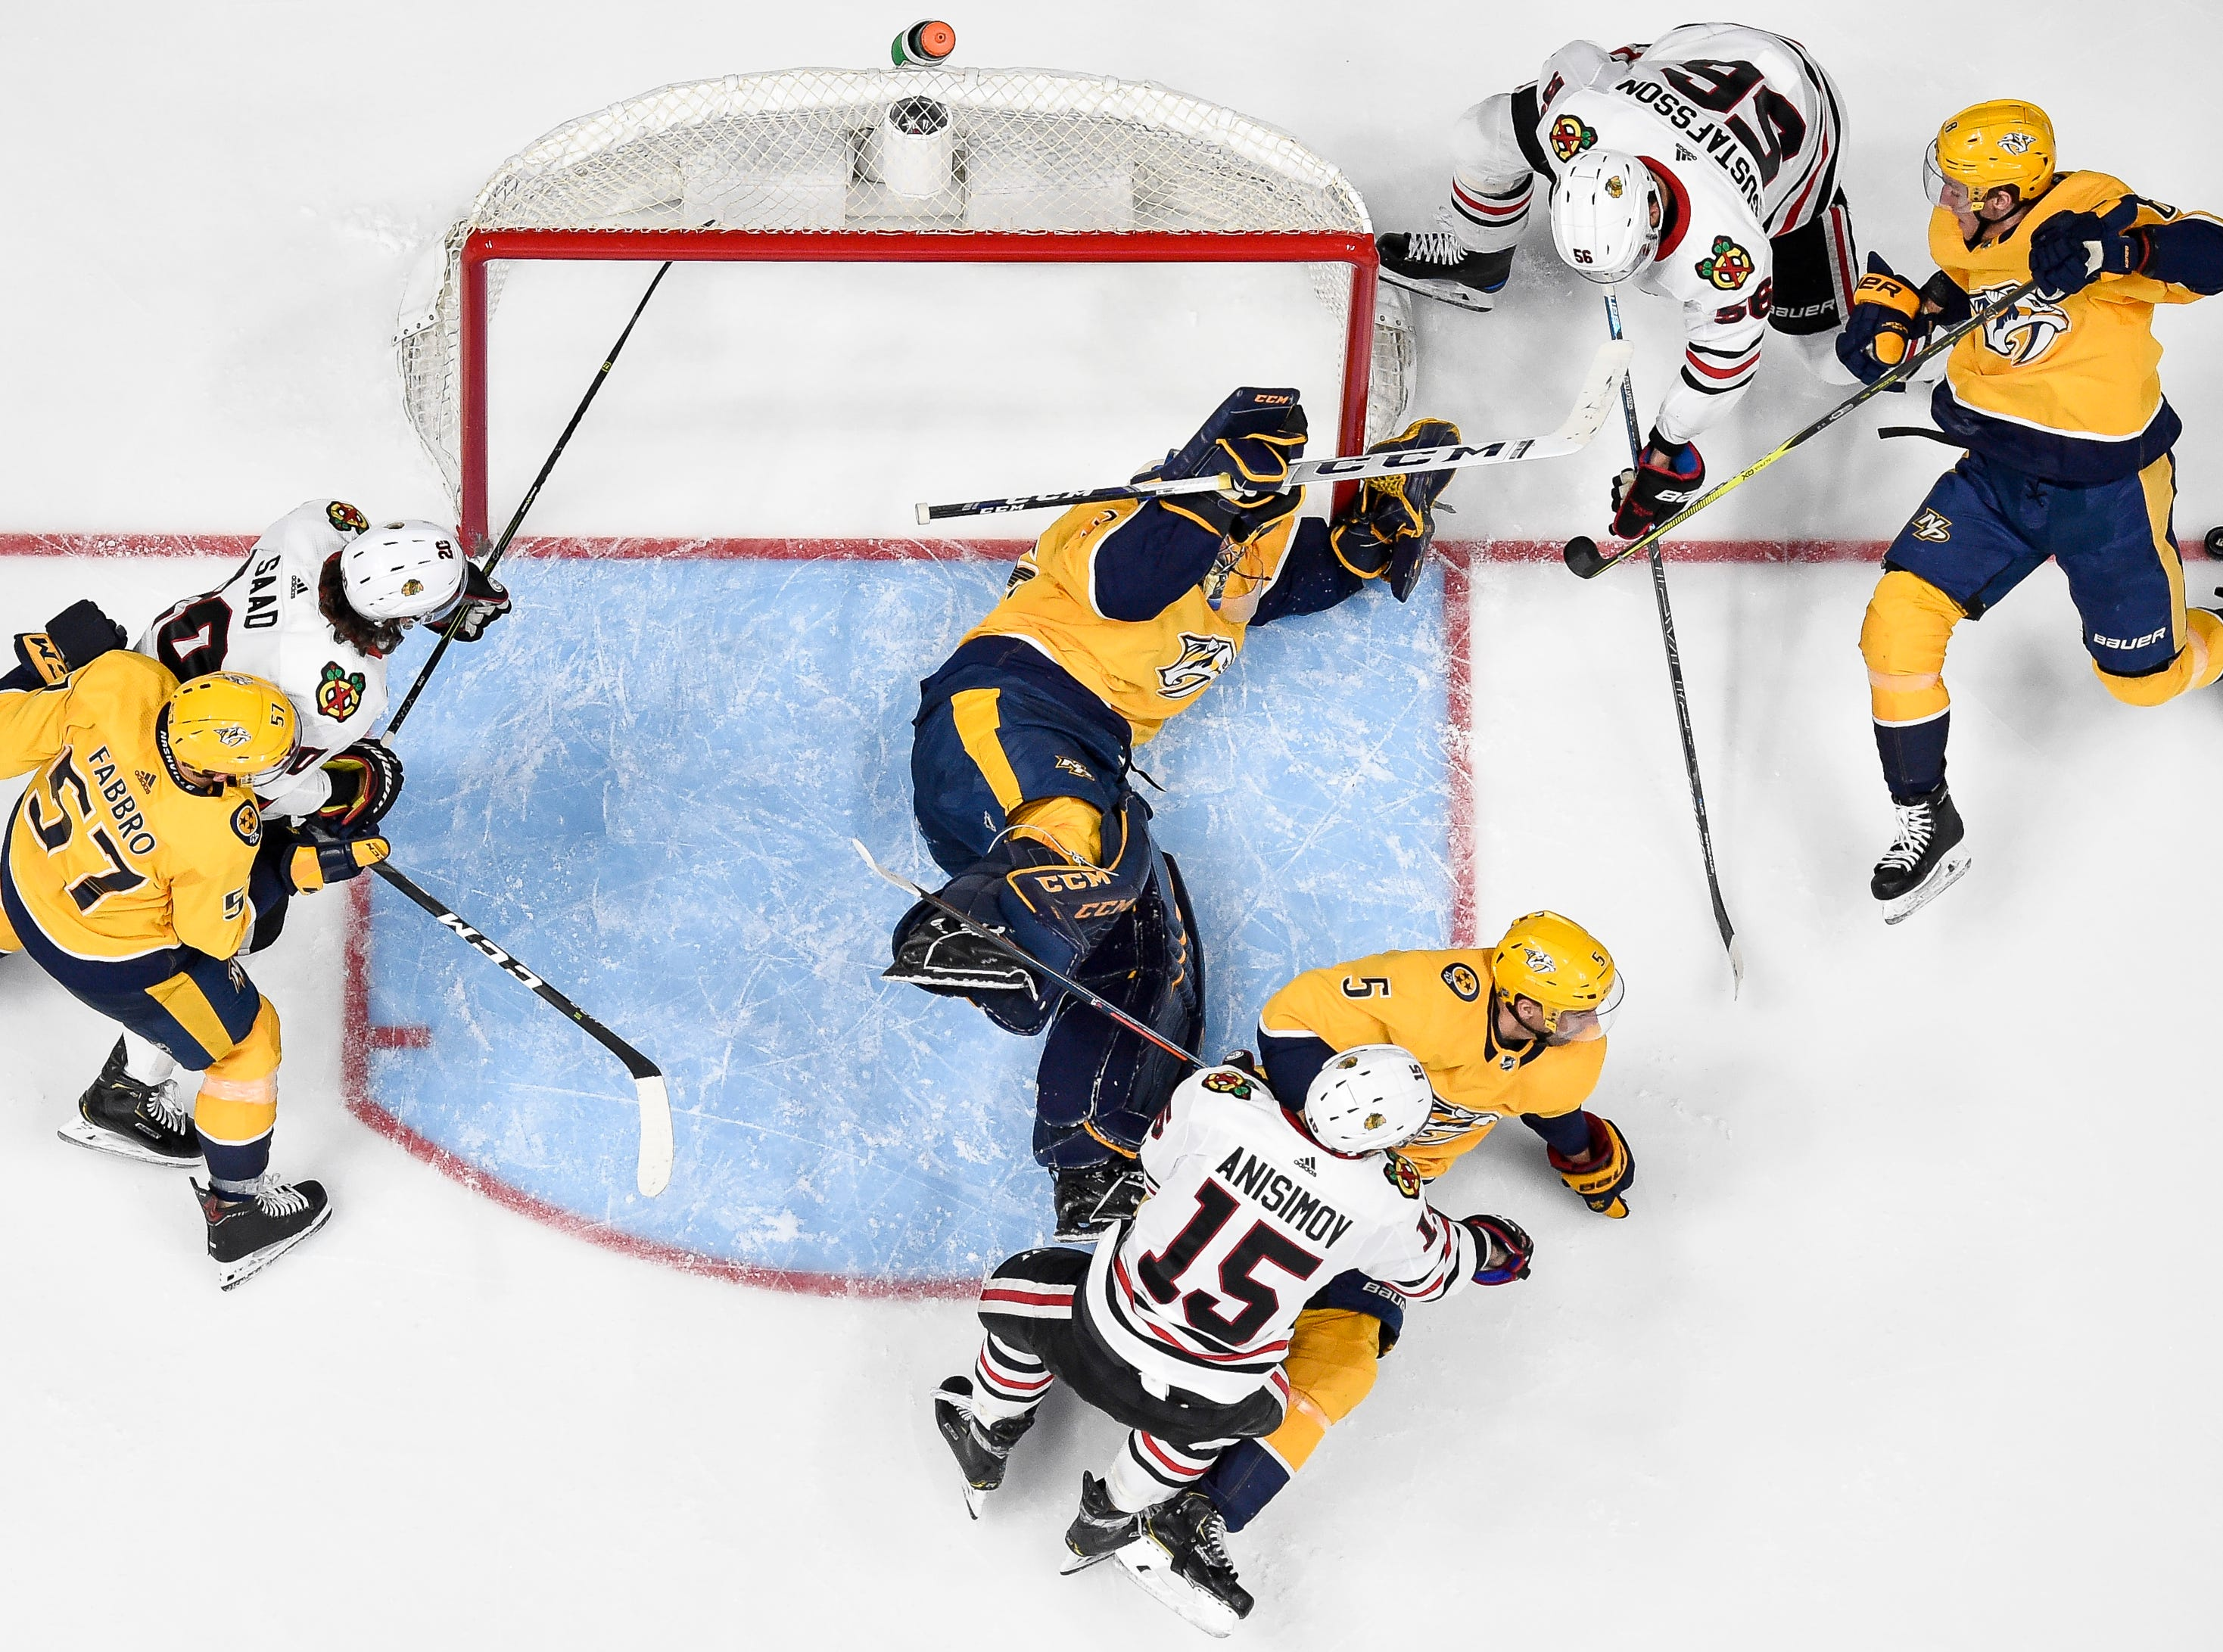 Nashville Predators goaltender Pekka Rinne (35) and center Kyle Turris (8) defend against Chicago Blackhawks defenseman Erik Gustafsson (56) during the third period at Bridgestone Arena in Nashville, Tenn., Saturday, April 6, 2019.